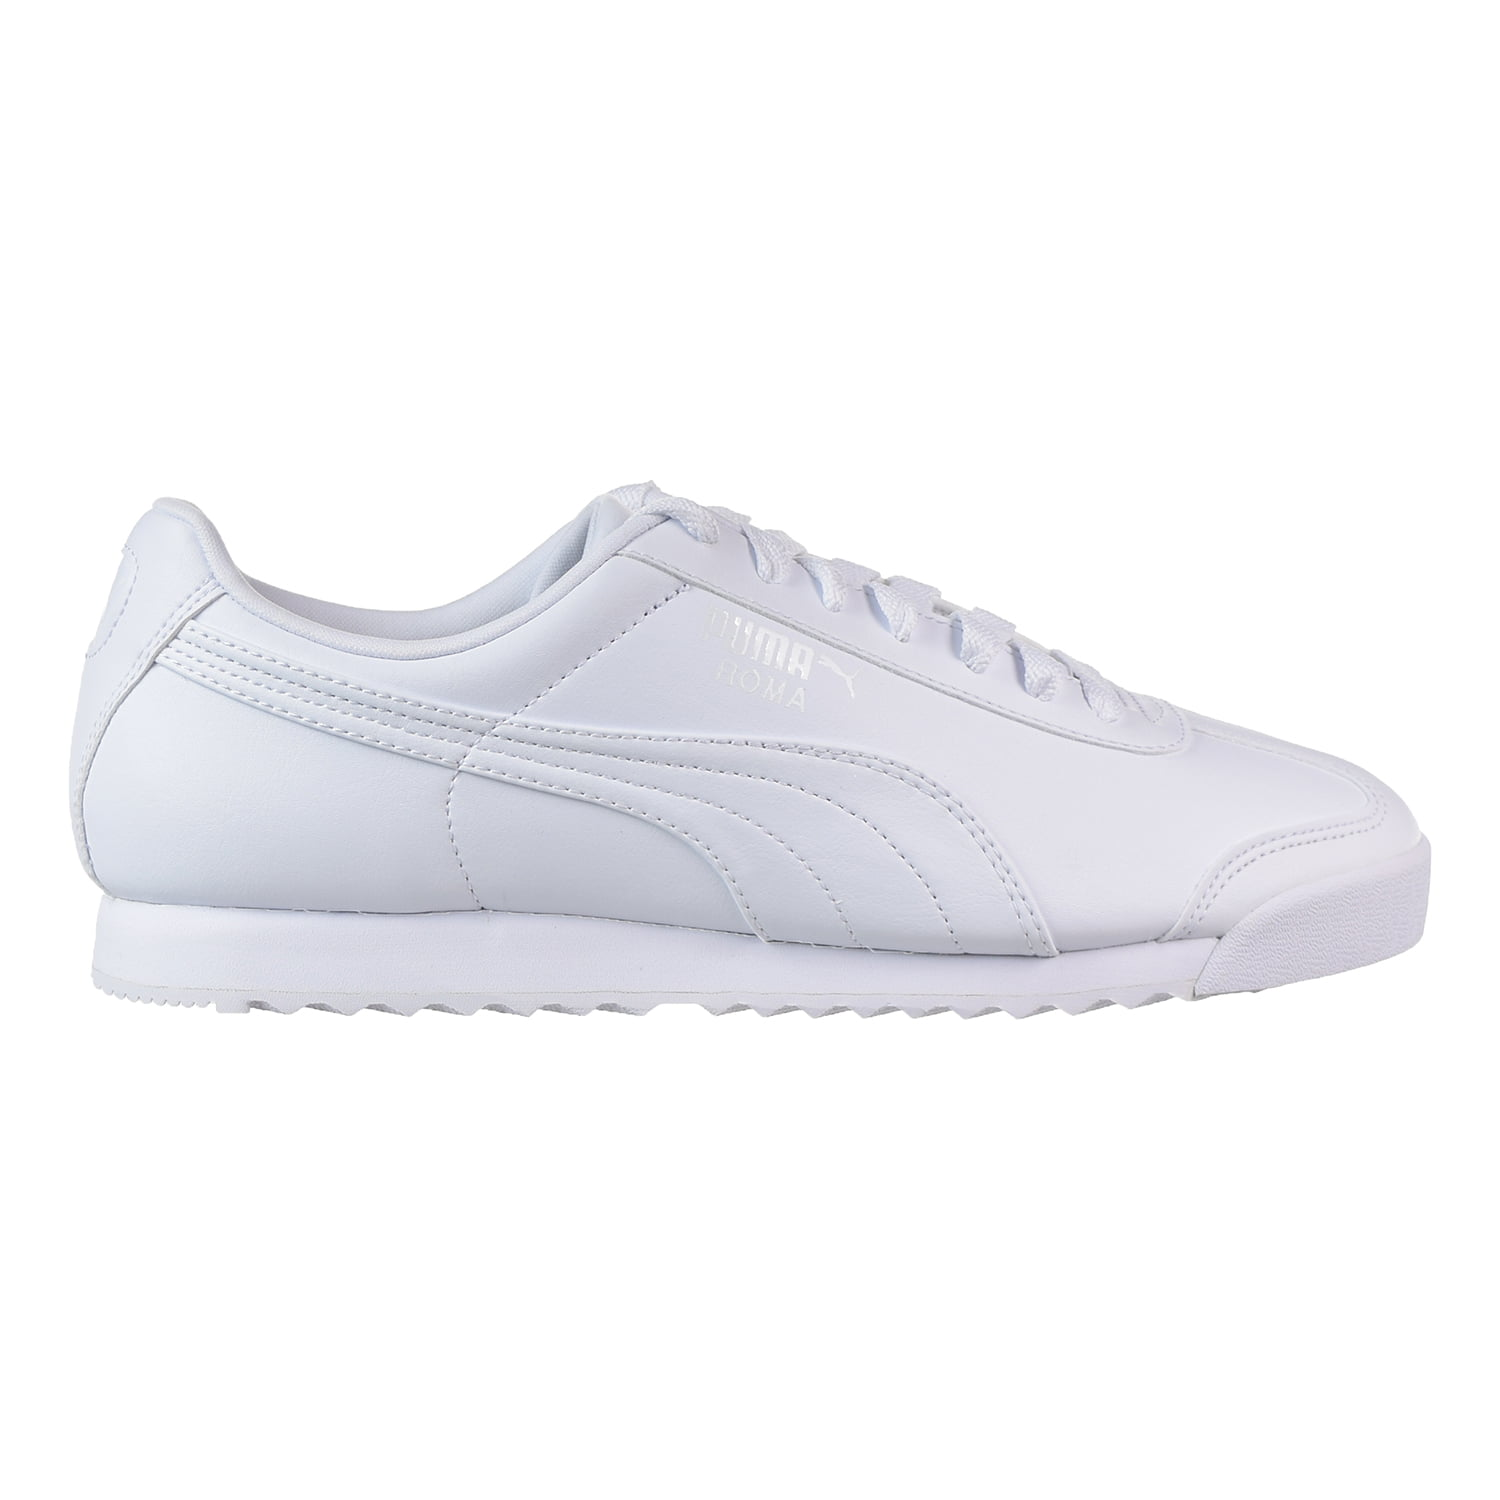 Puma Roma Basic    Round Toe Synthetic   Walking Shoe 3eeba3